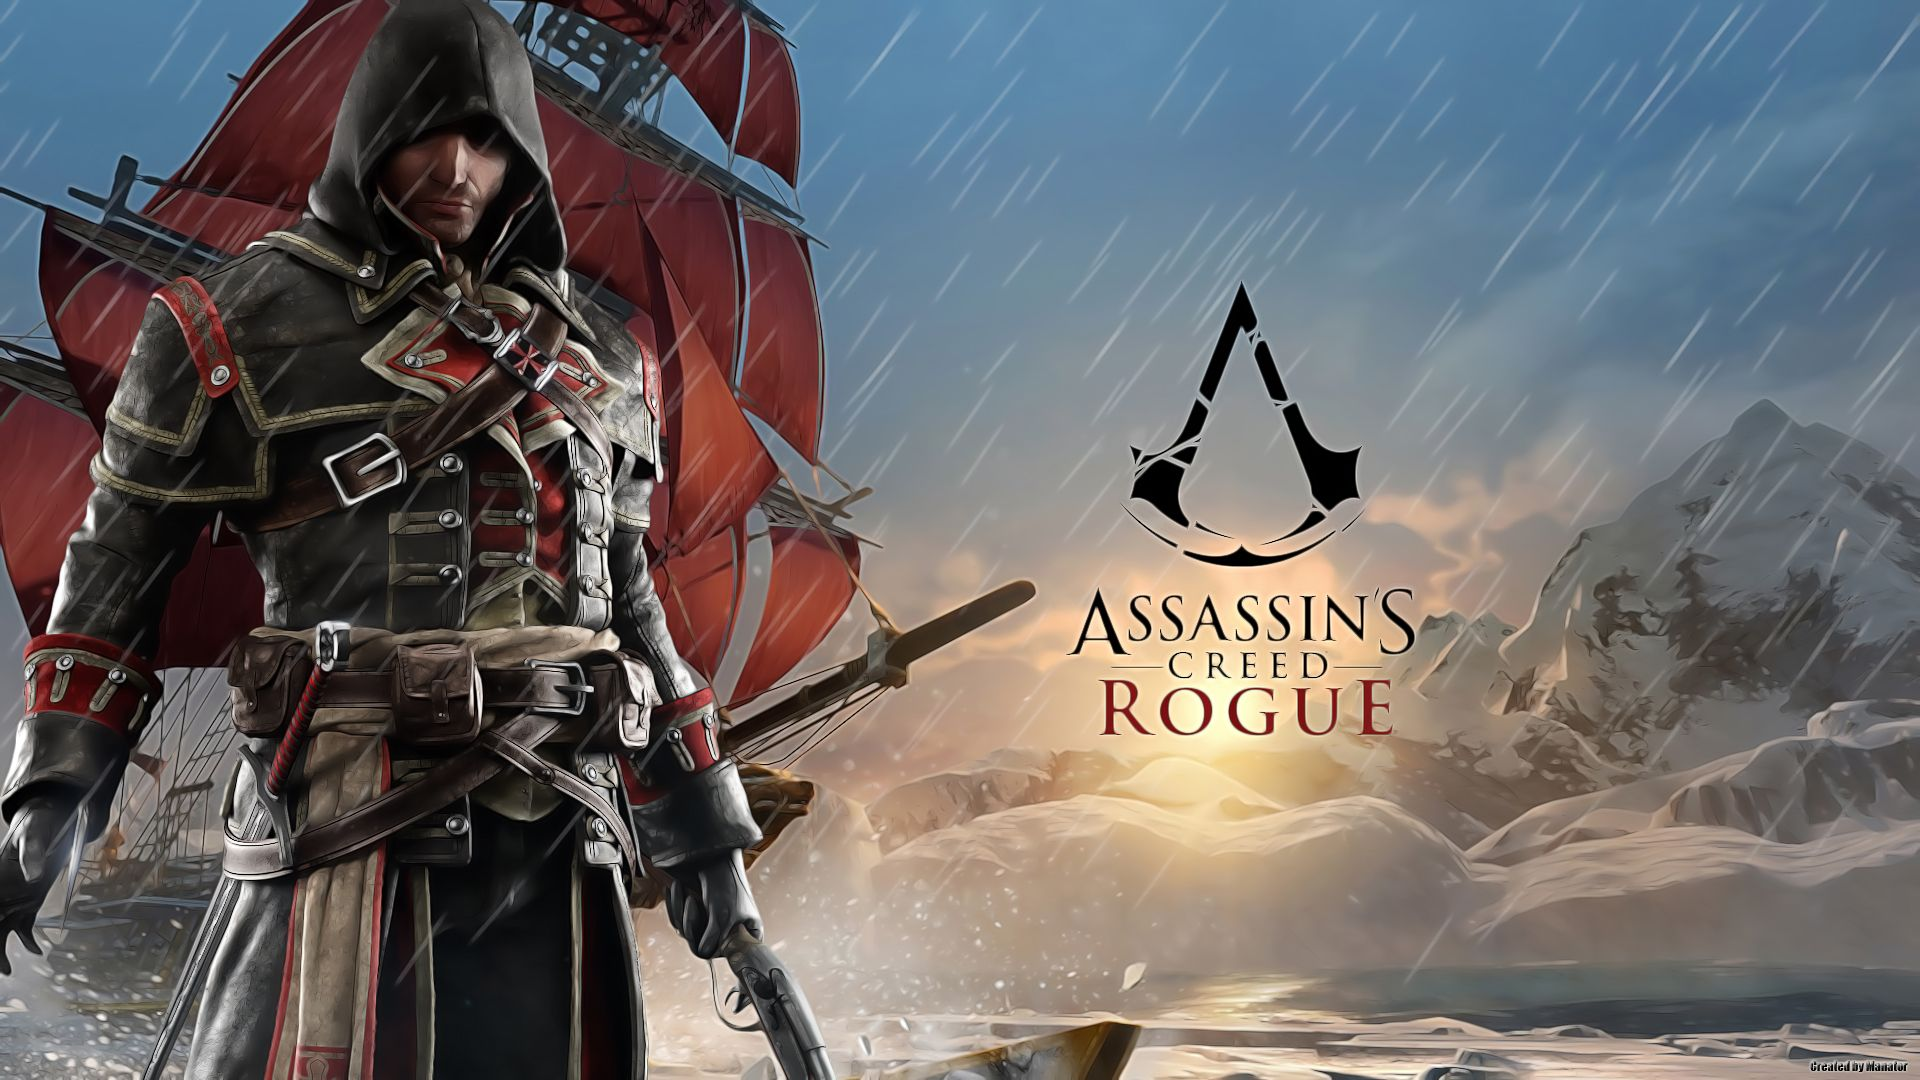 The Best Assassin S Creed Game A Countdown Assassins Creed Assassin S Creed Assassins Creed Rogue